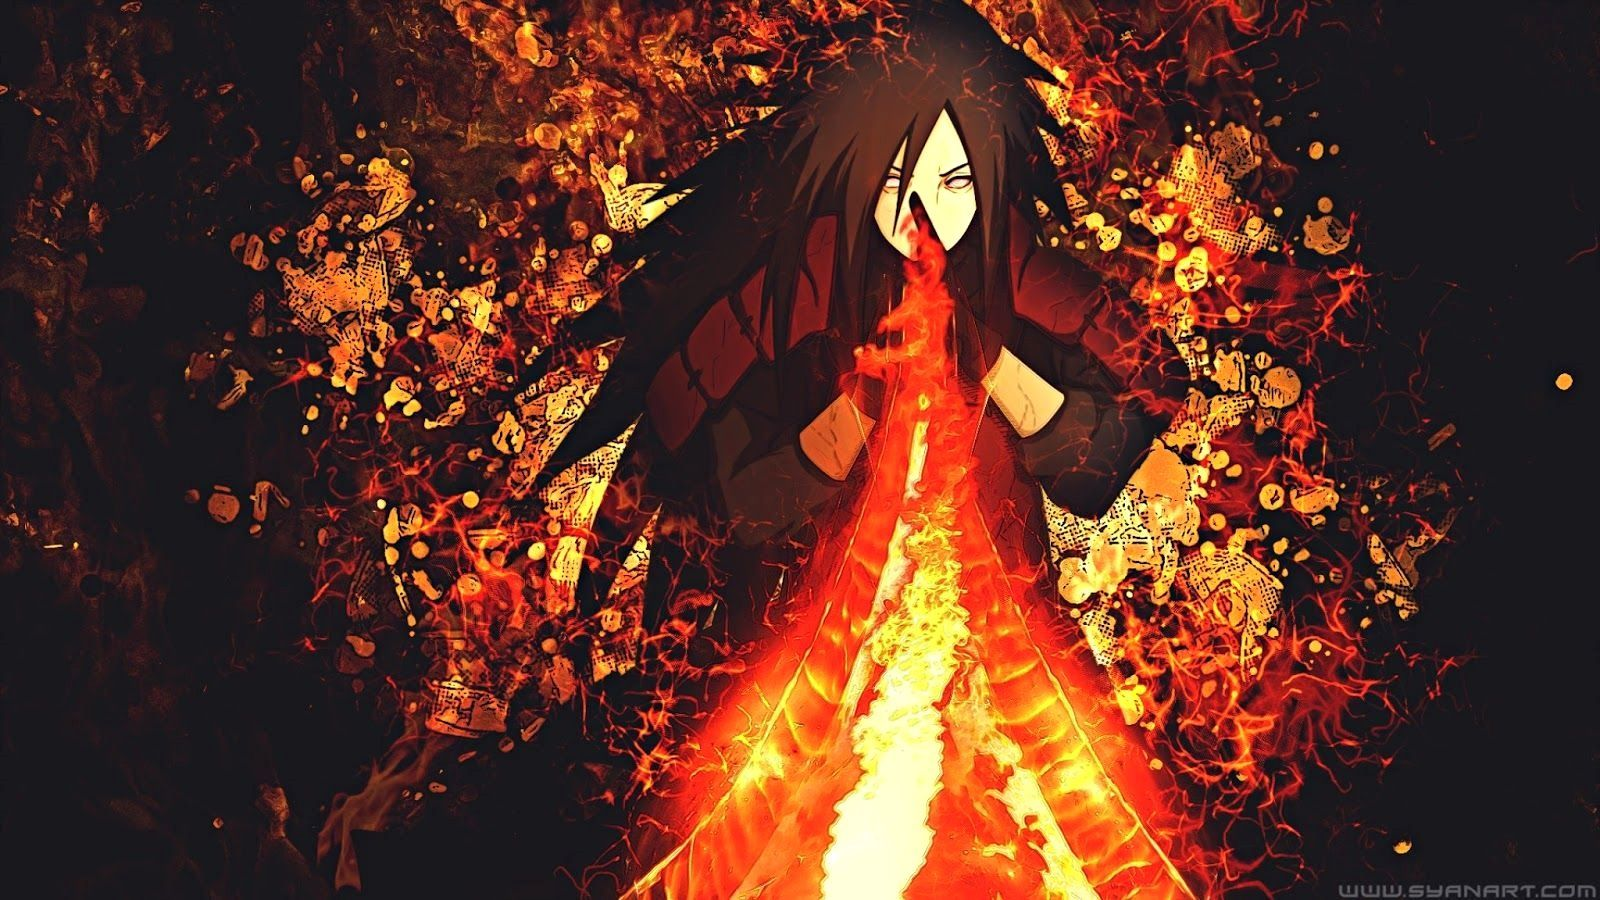 Naruto Wallpaper 4k Pc Download Gallery 4k Naruto Wallpaper Naruto Phone Wallpaper Naruto Mobile